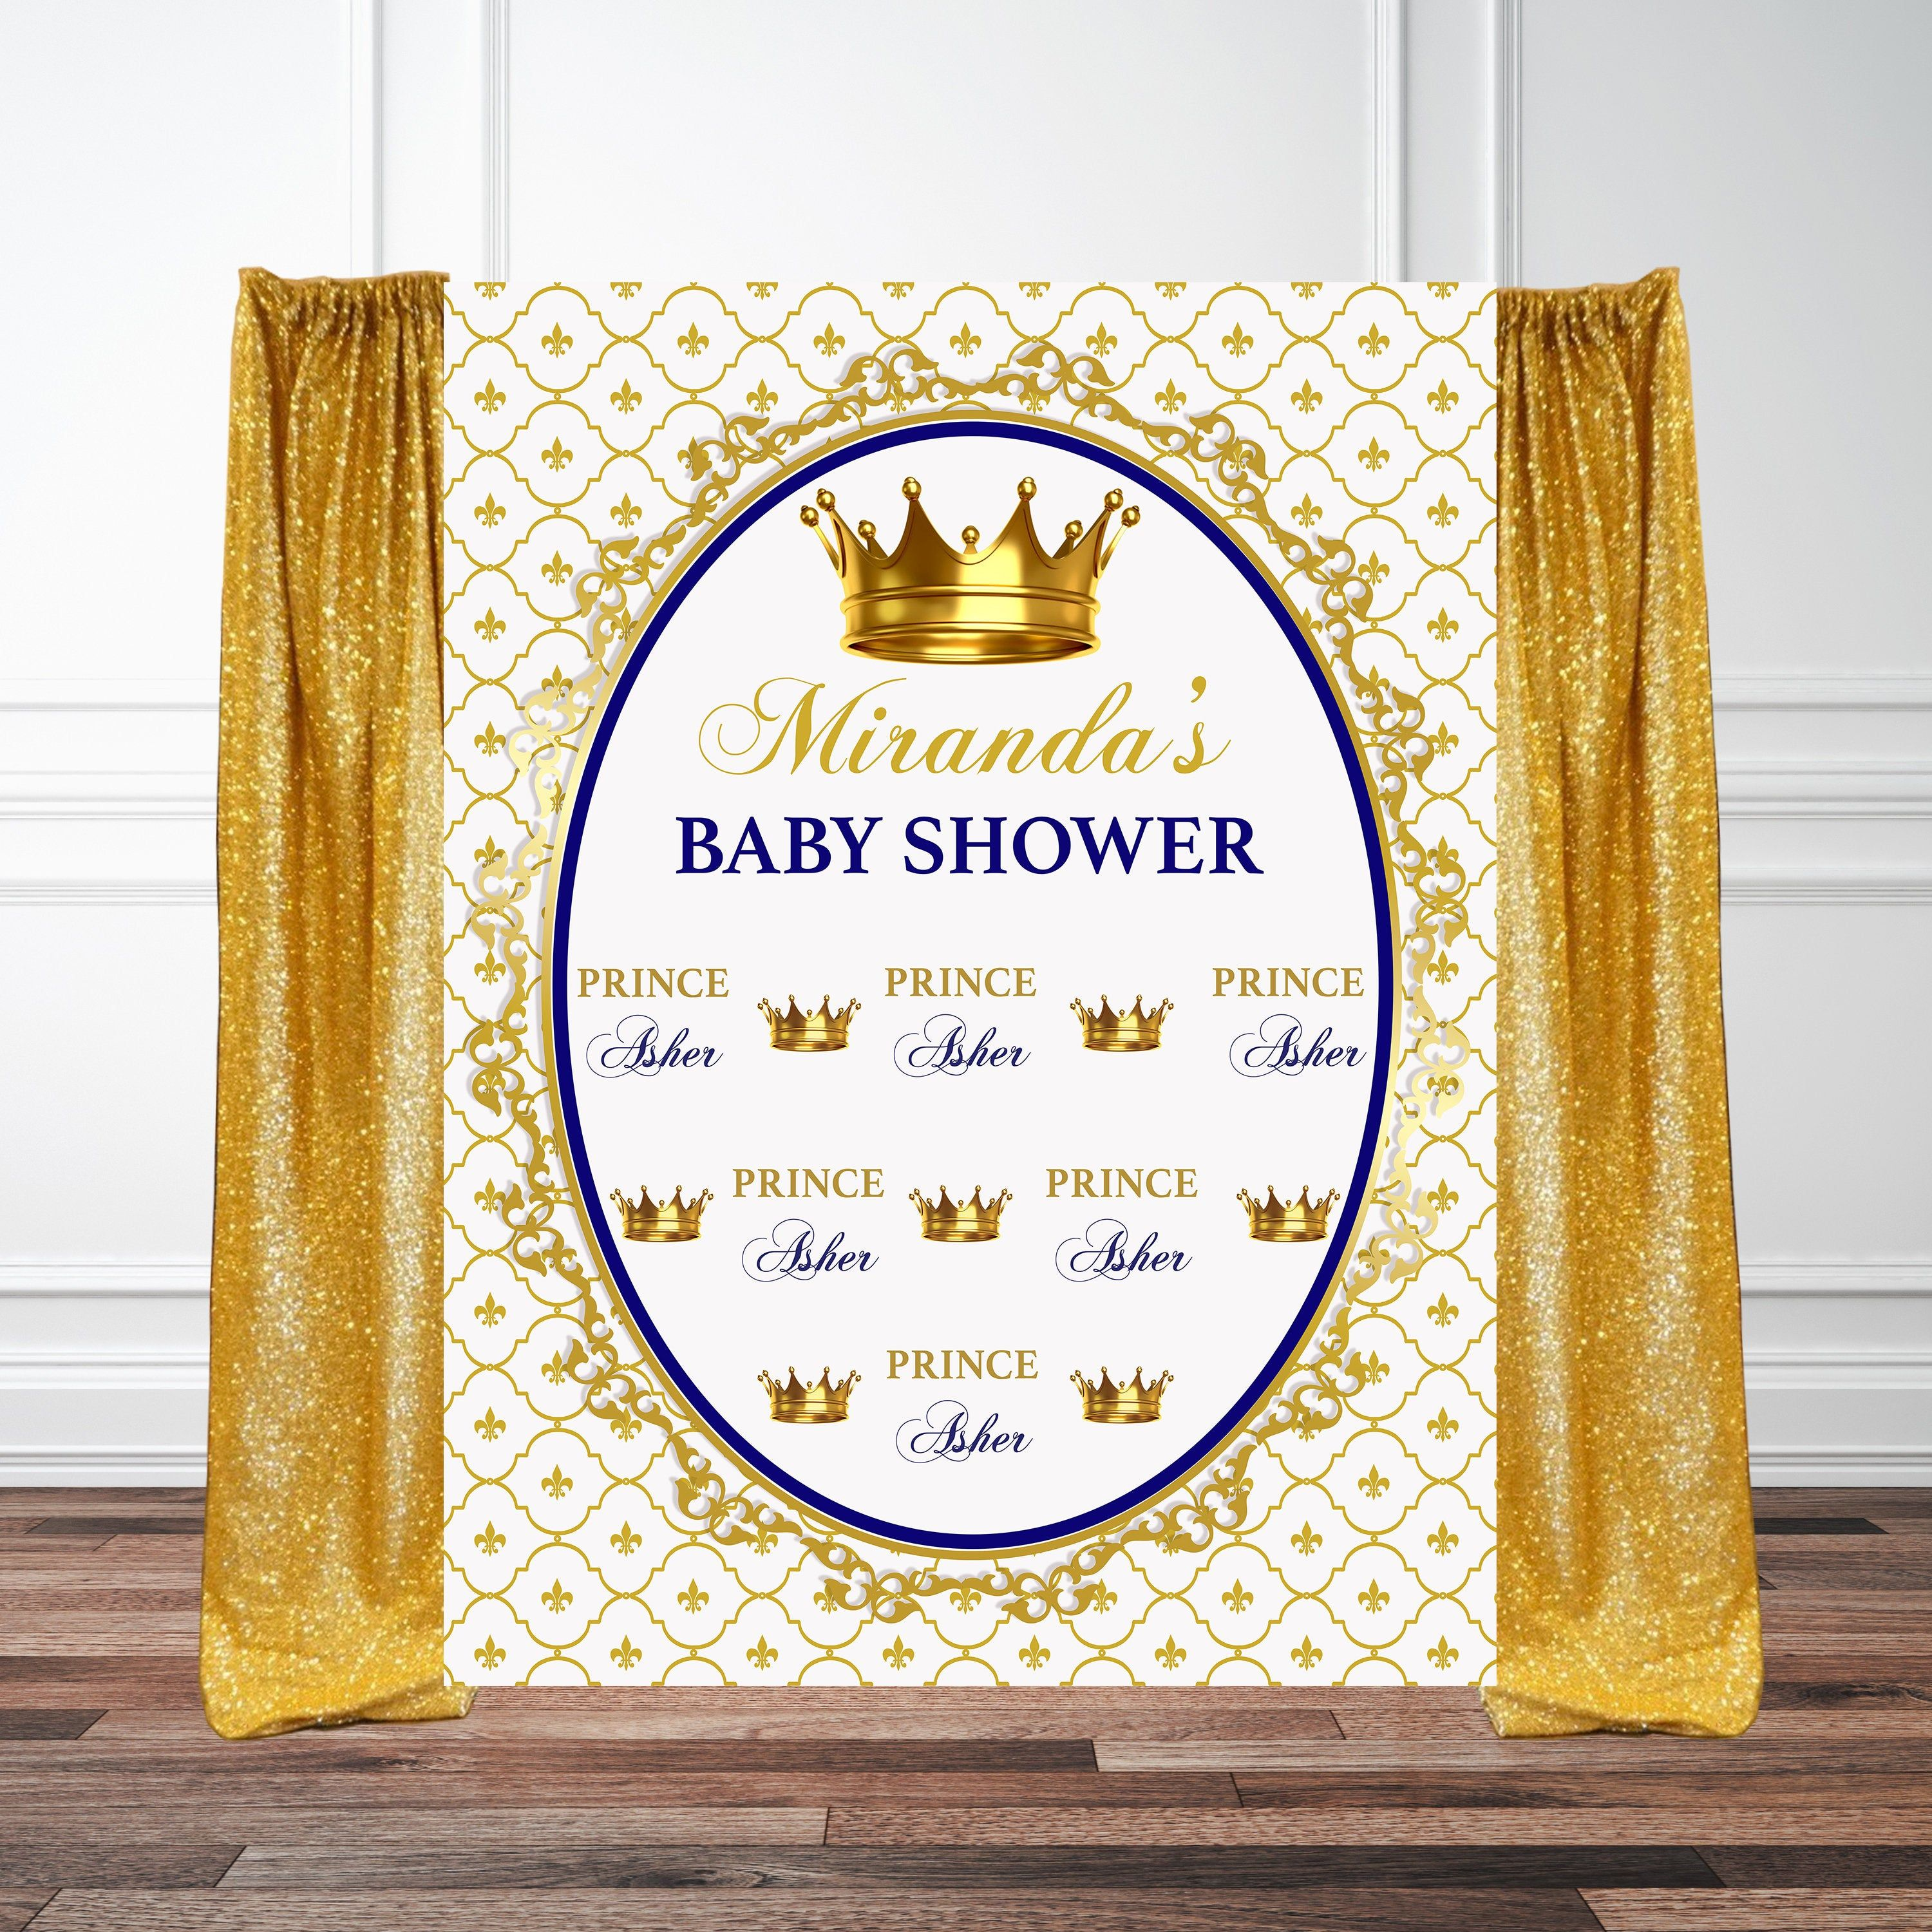 prince baptism birthday baby shower backdrop cross photo booth backdrop step and repeat backdrop royal baby tiara crown